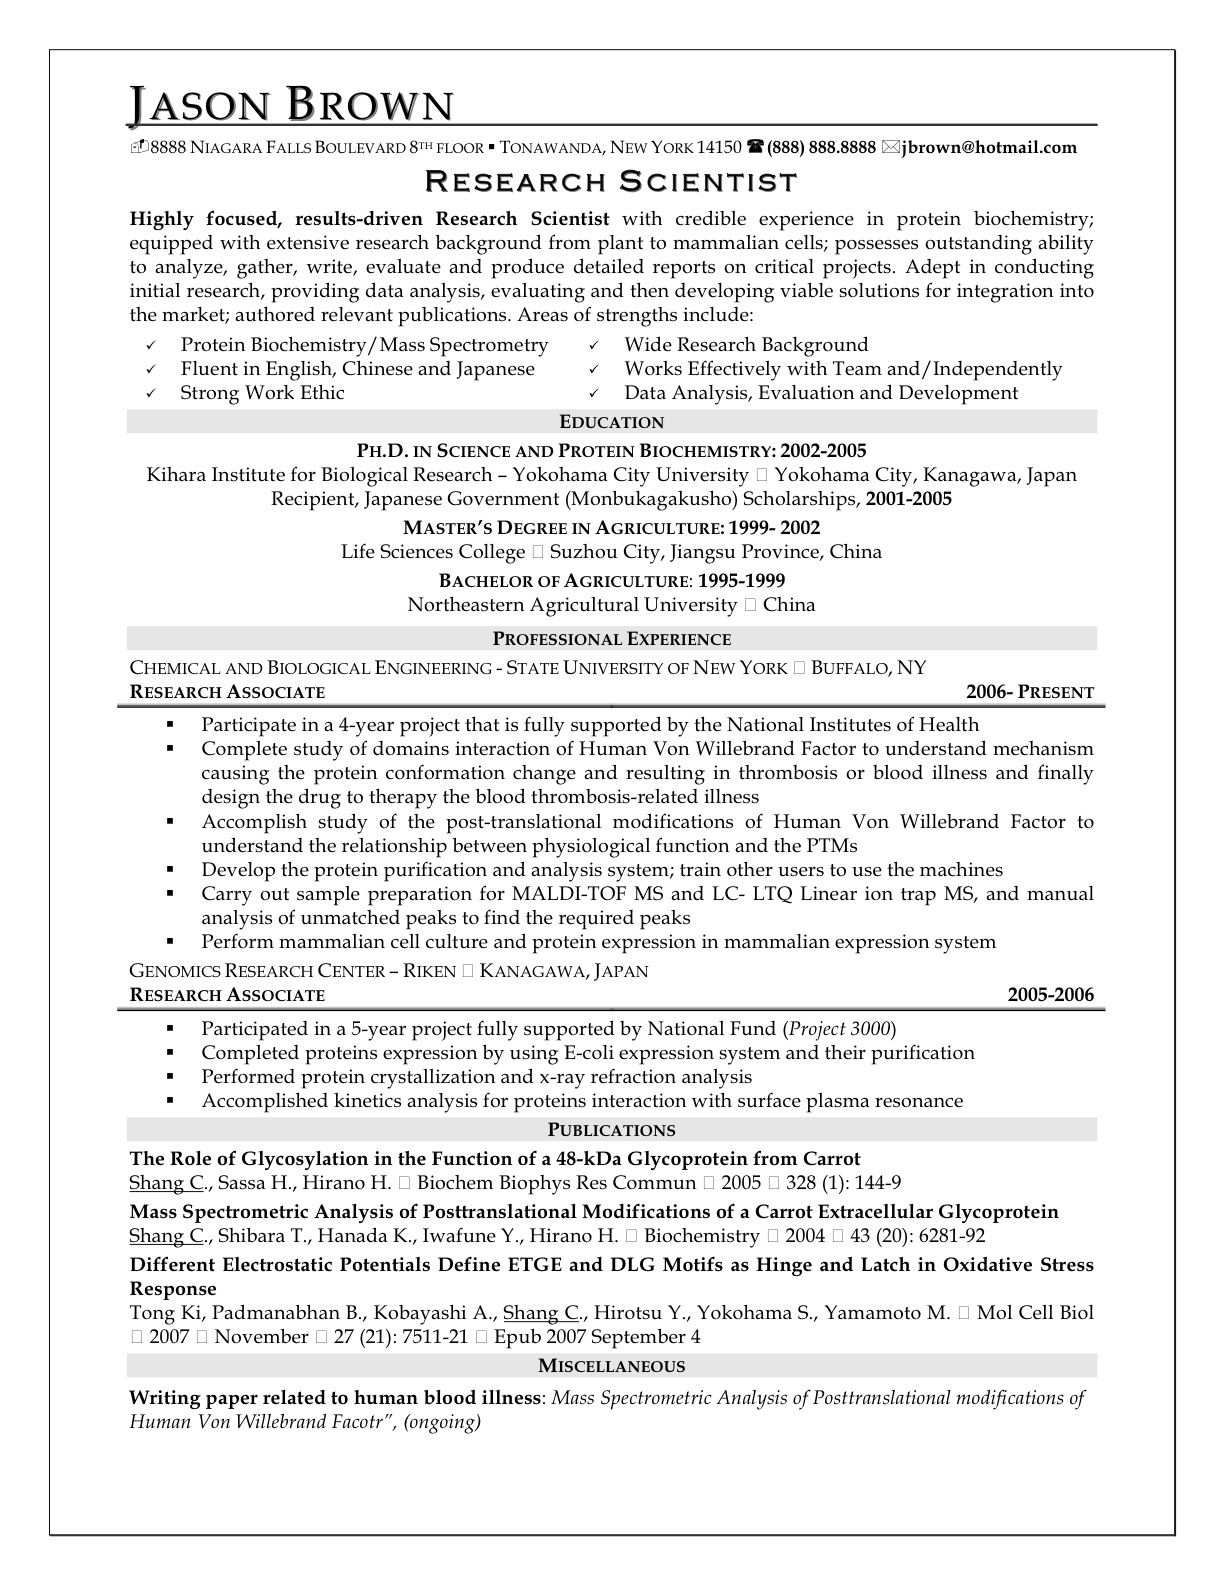 Sample Government Resume Relevant Coursework Computer Sciencestudy Computer Science